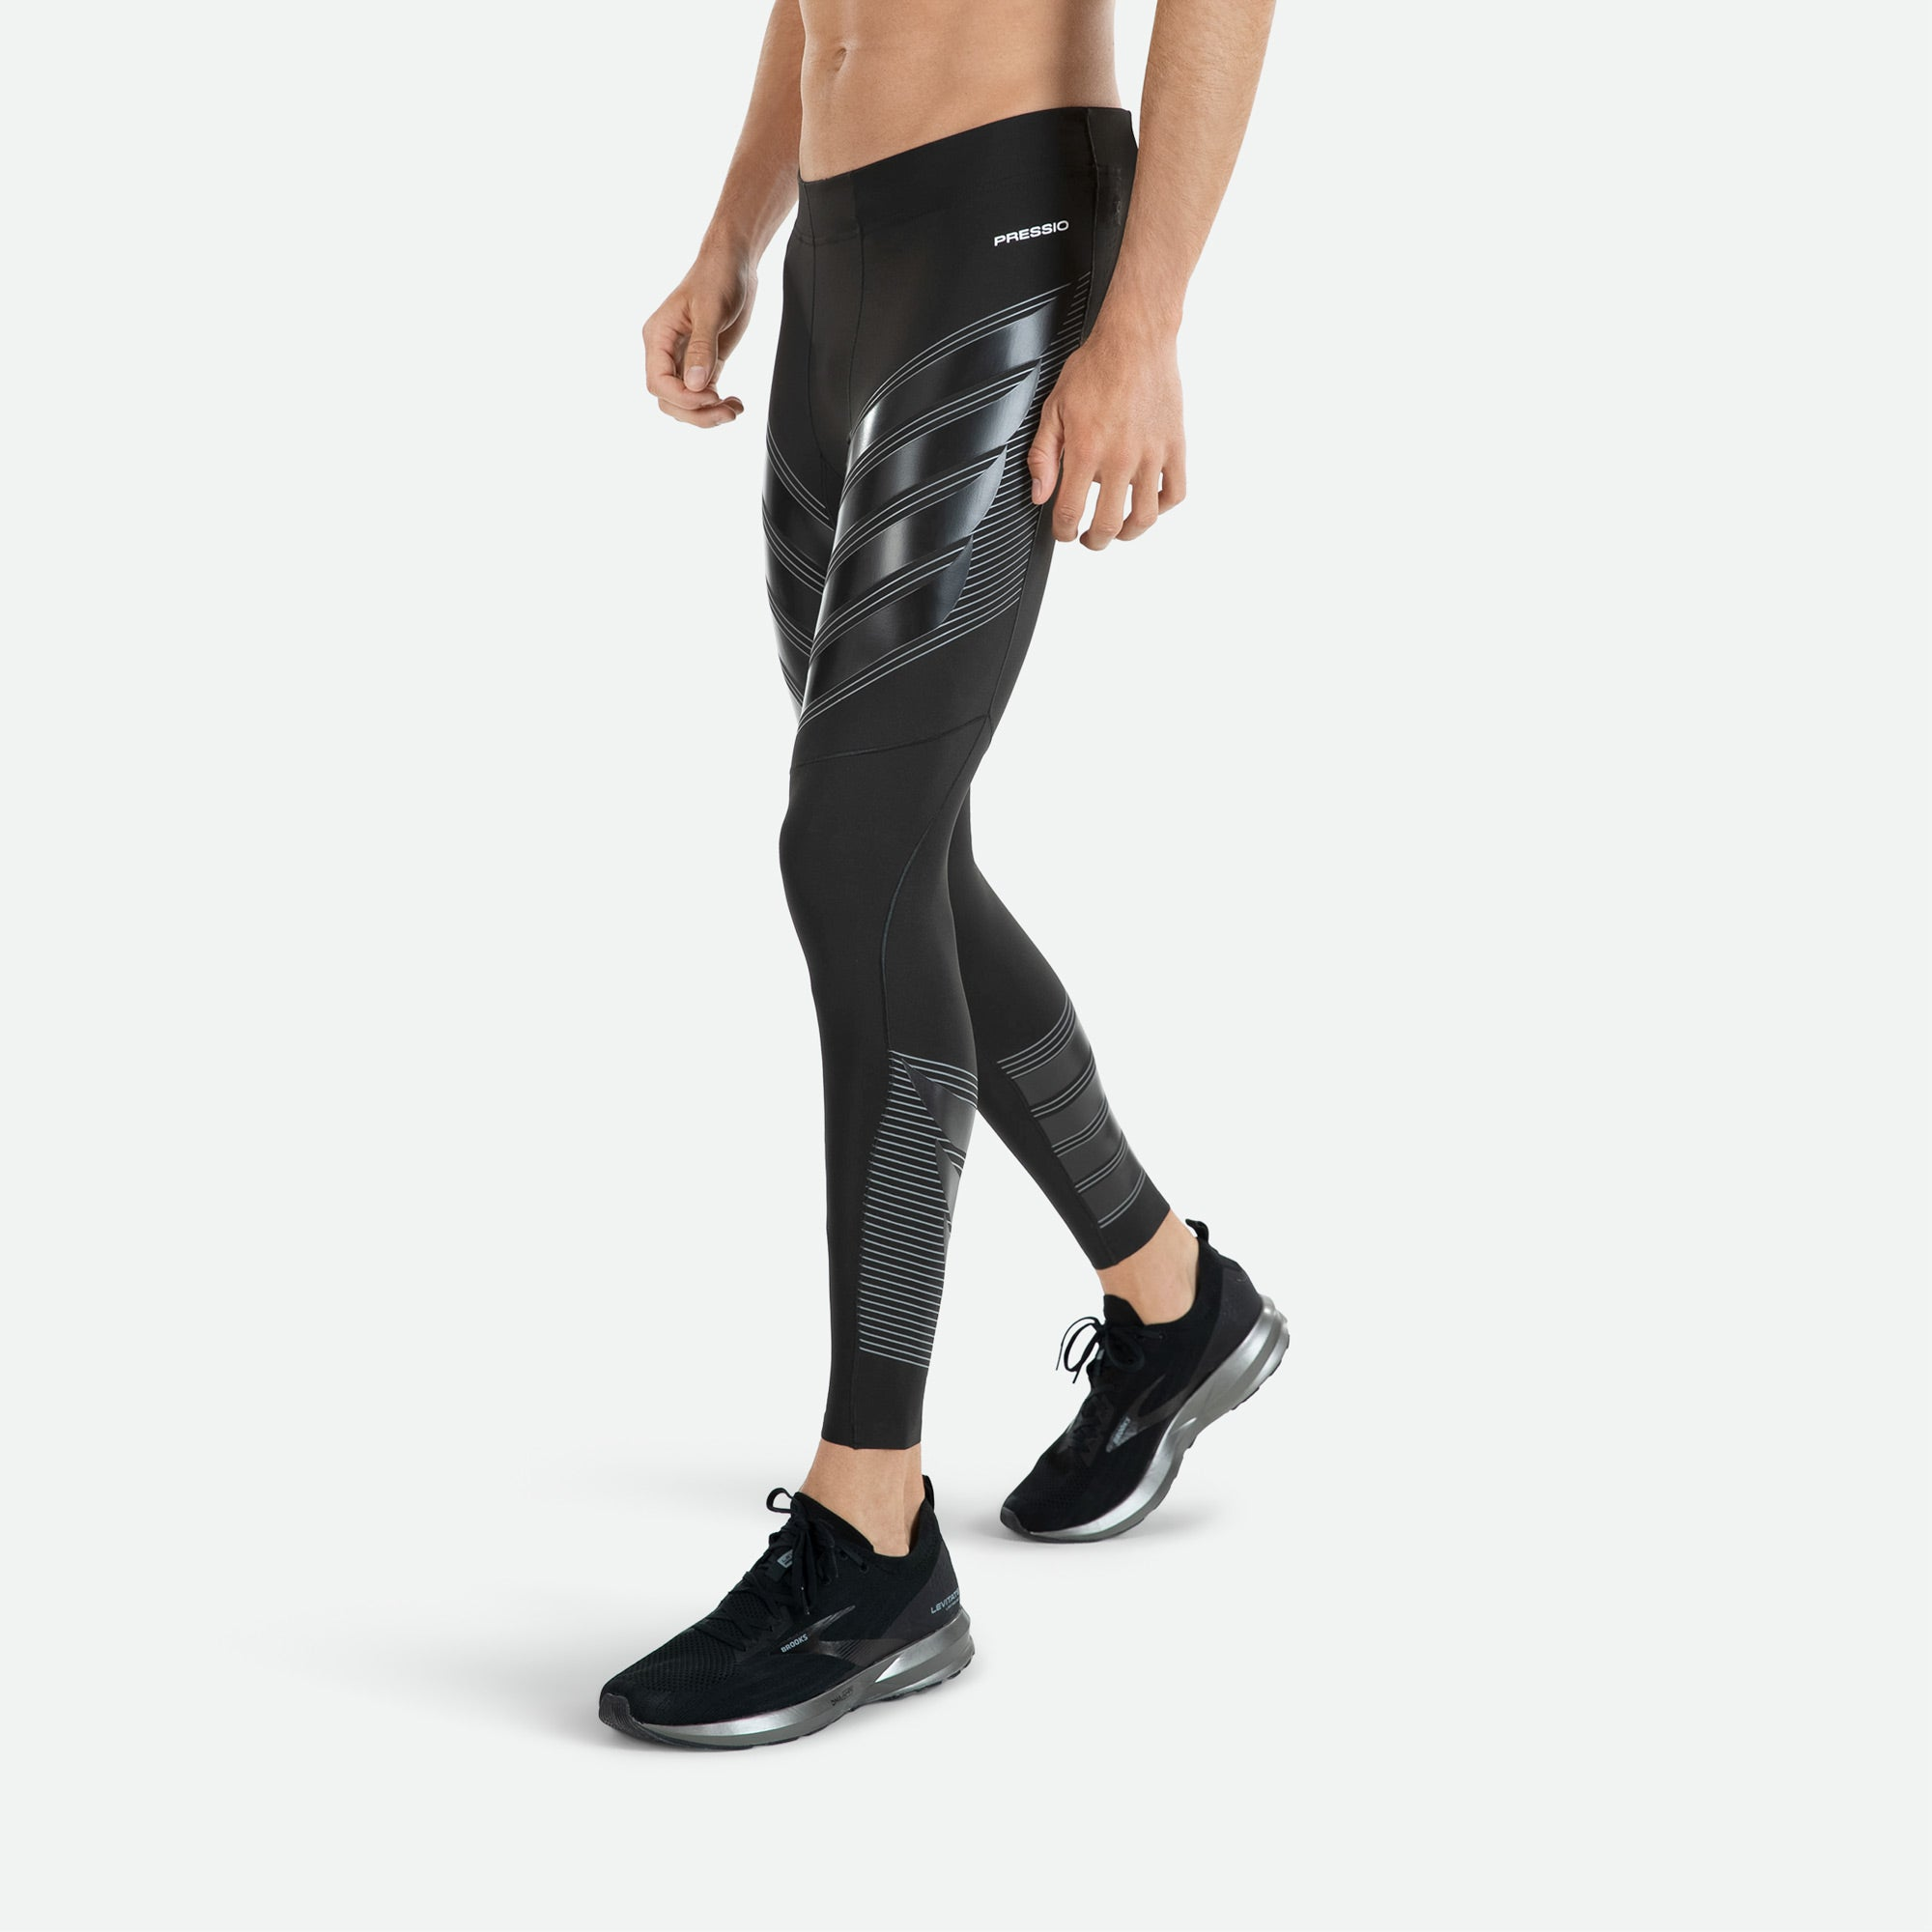 Mens Pressio power run compression tights utilizing MAPP technology cradling the hamstring muscles and wrapping the glutes for extra support.